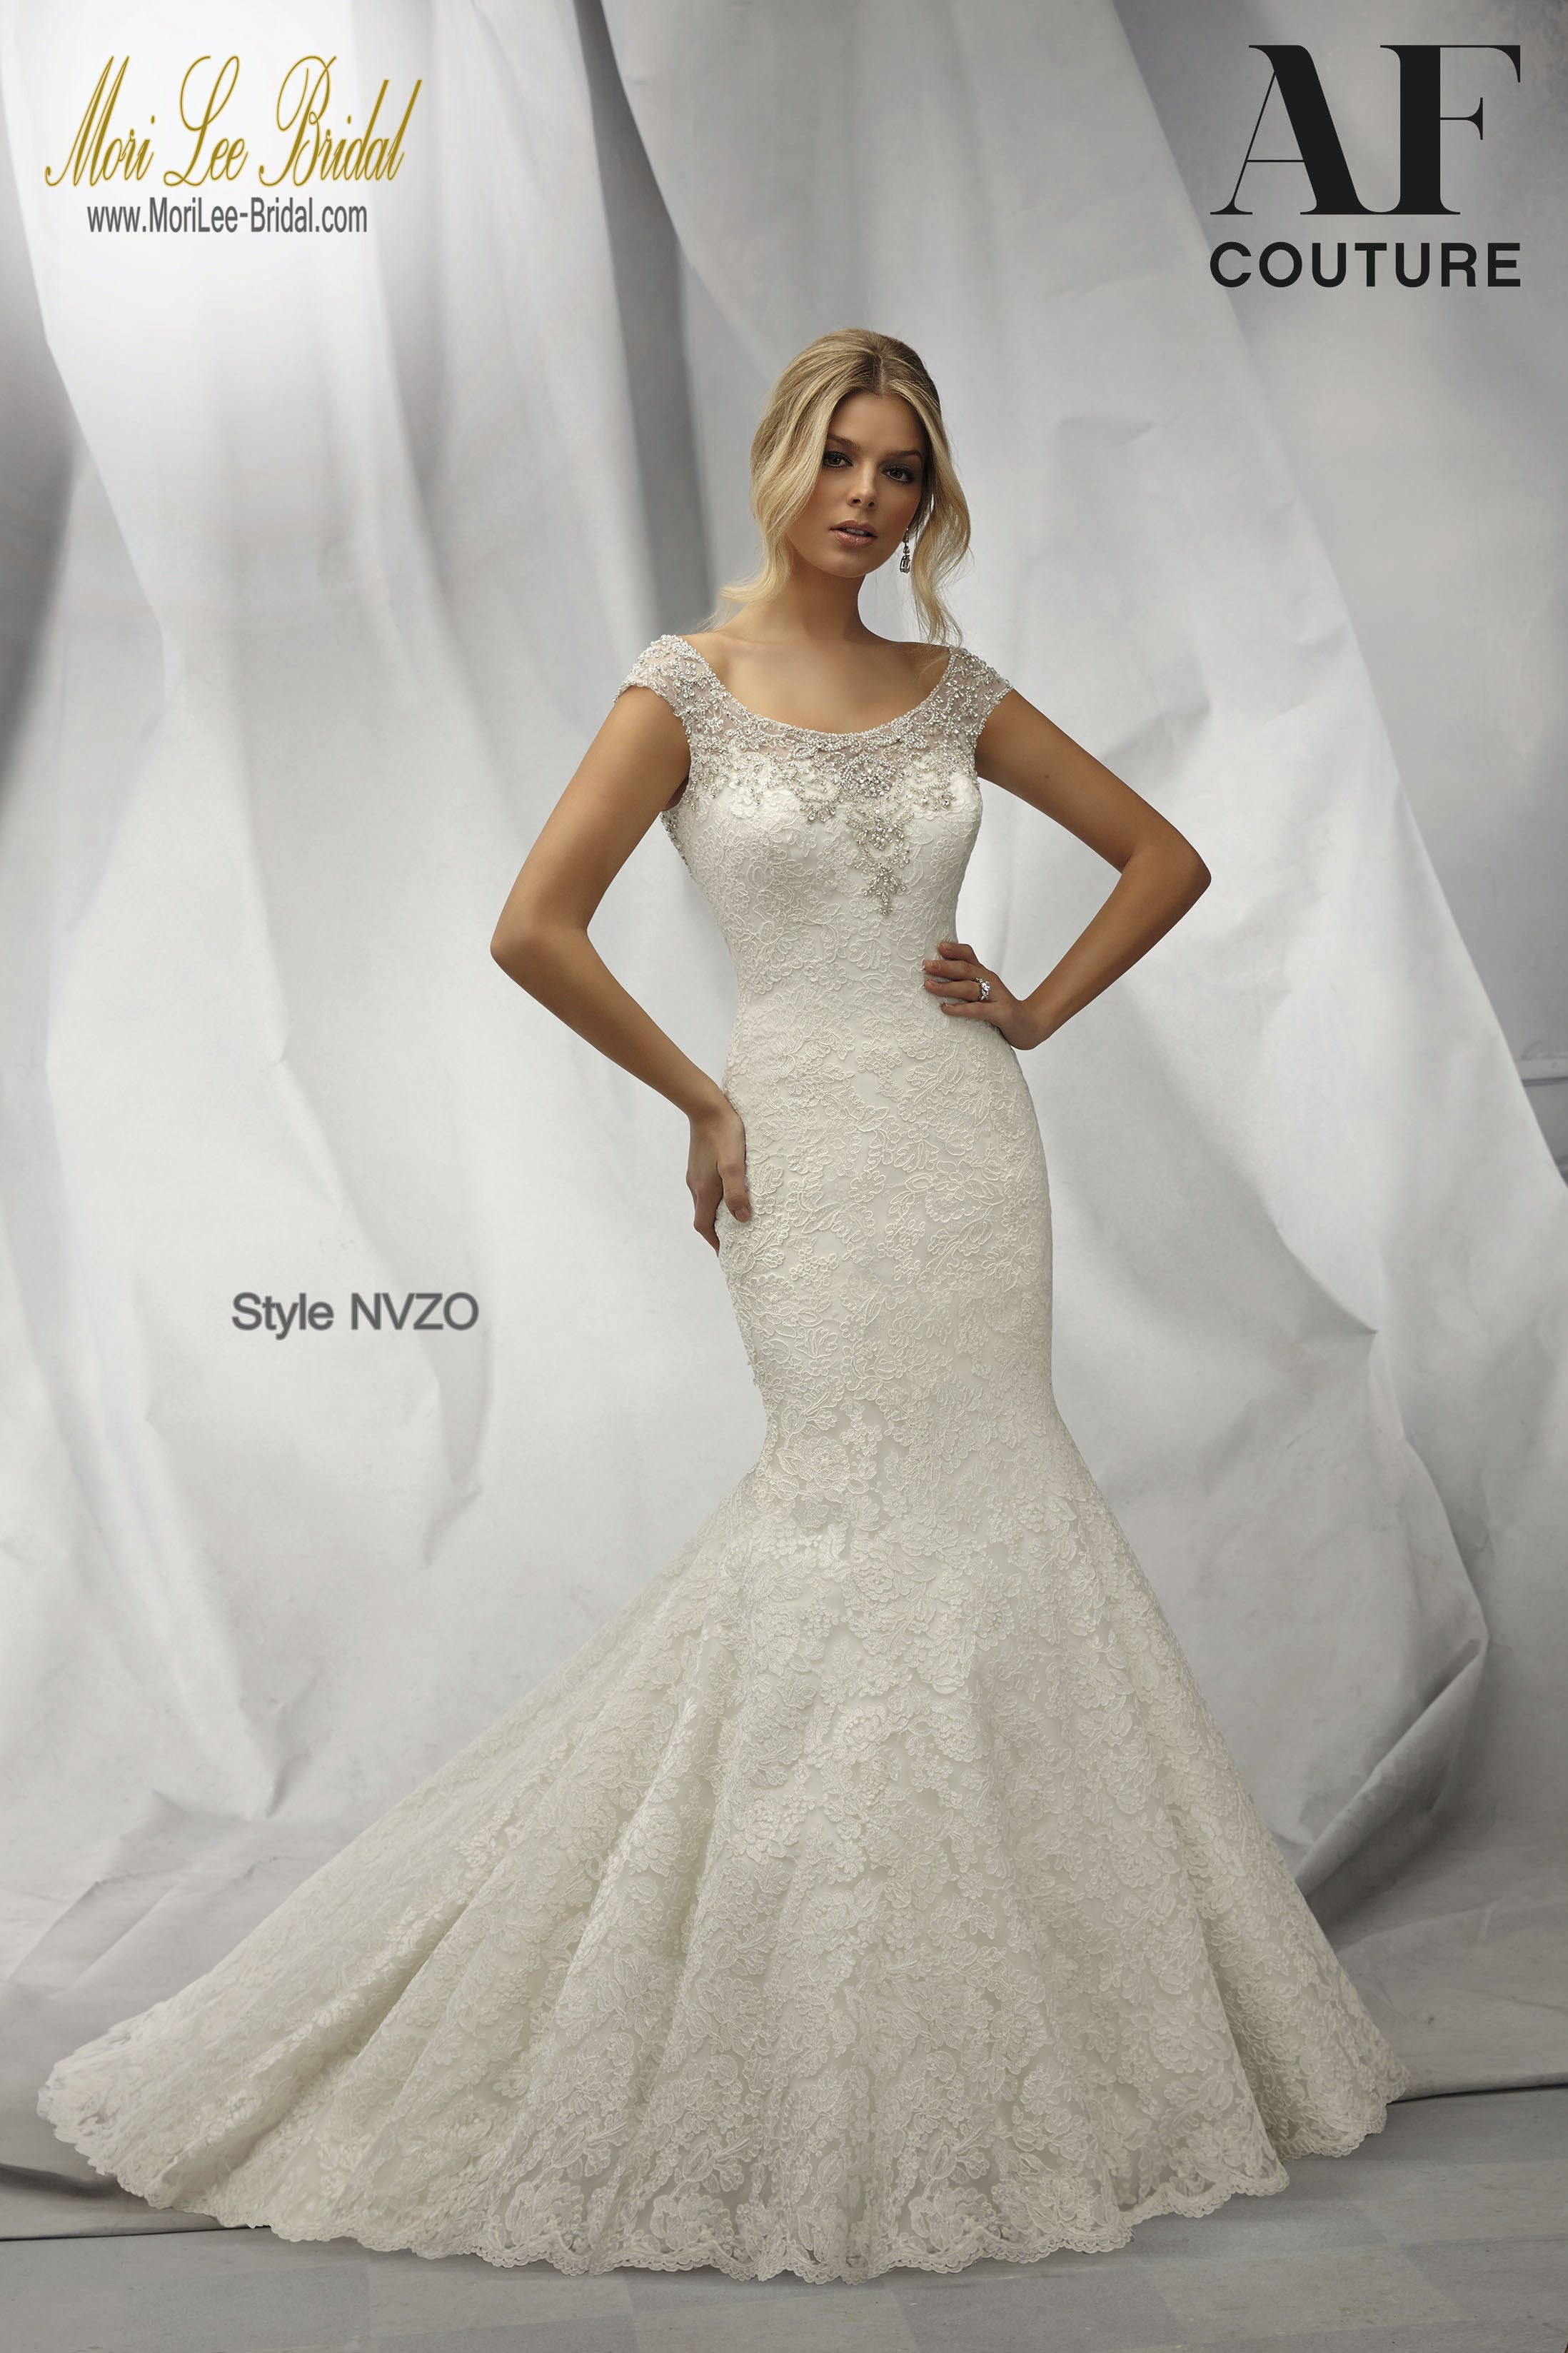 Dress style nvzo mori lee bridal elegant allover embroidered lace